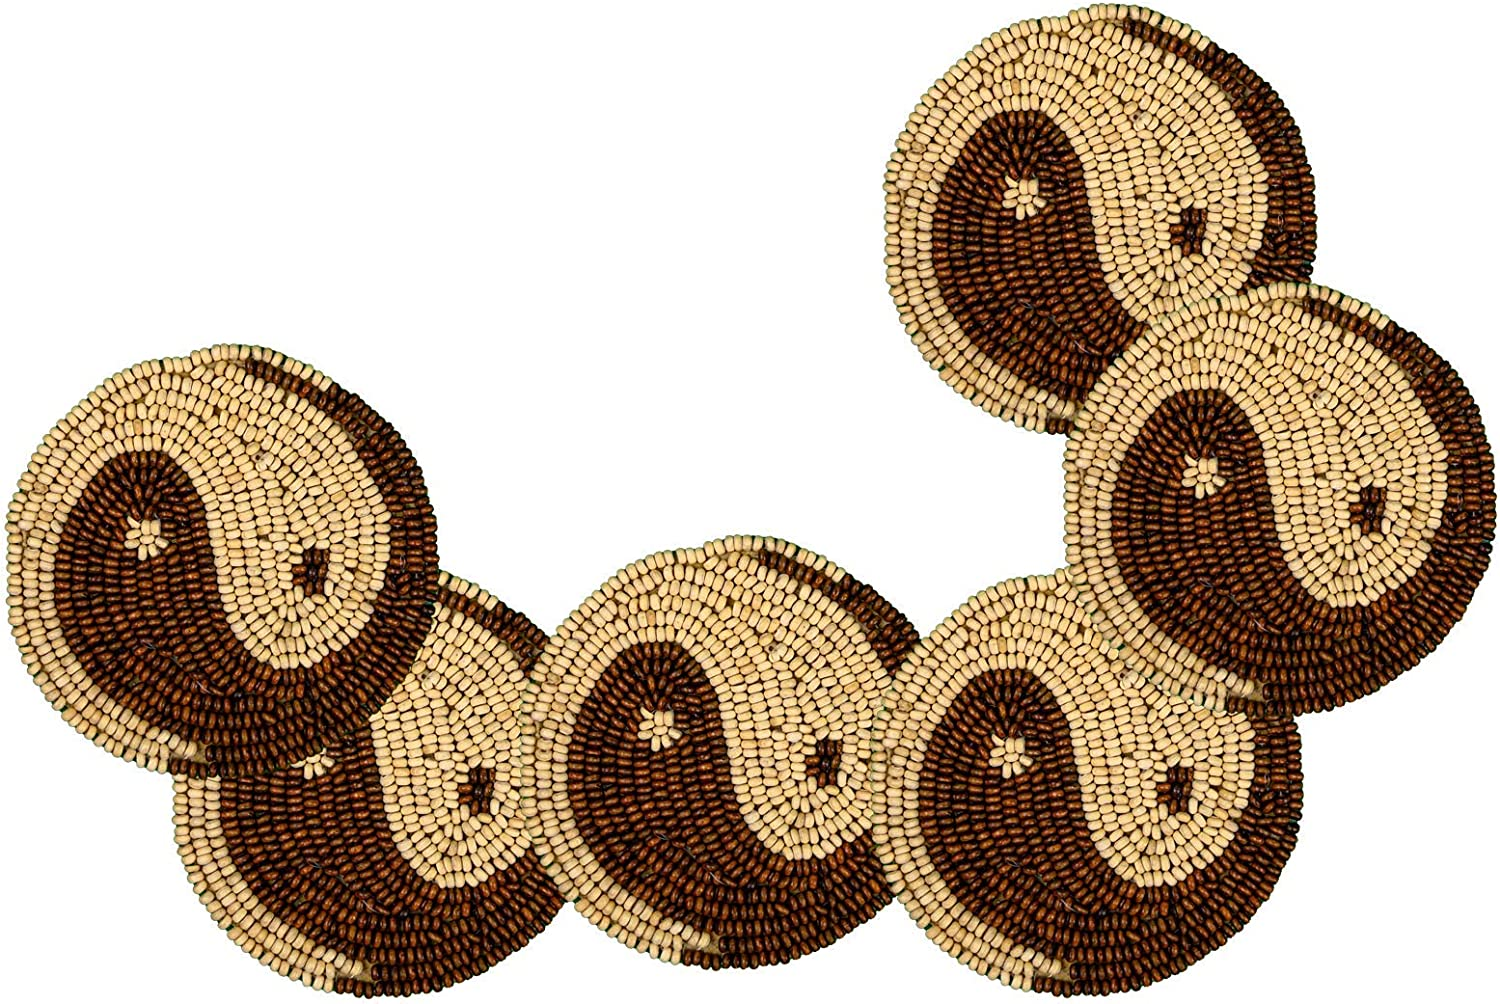 "POPULAR LIFE HOME Zen- Yin & Yang Motif Wooden Bead Embroidered Coasters | Hand Beaded Placemat with Satin Back, Decorative Dining Table Coasters, Brown & Cream, 4"" Round (Set of 6)"